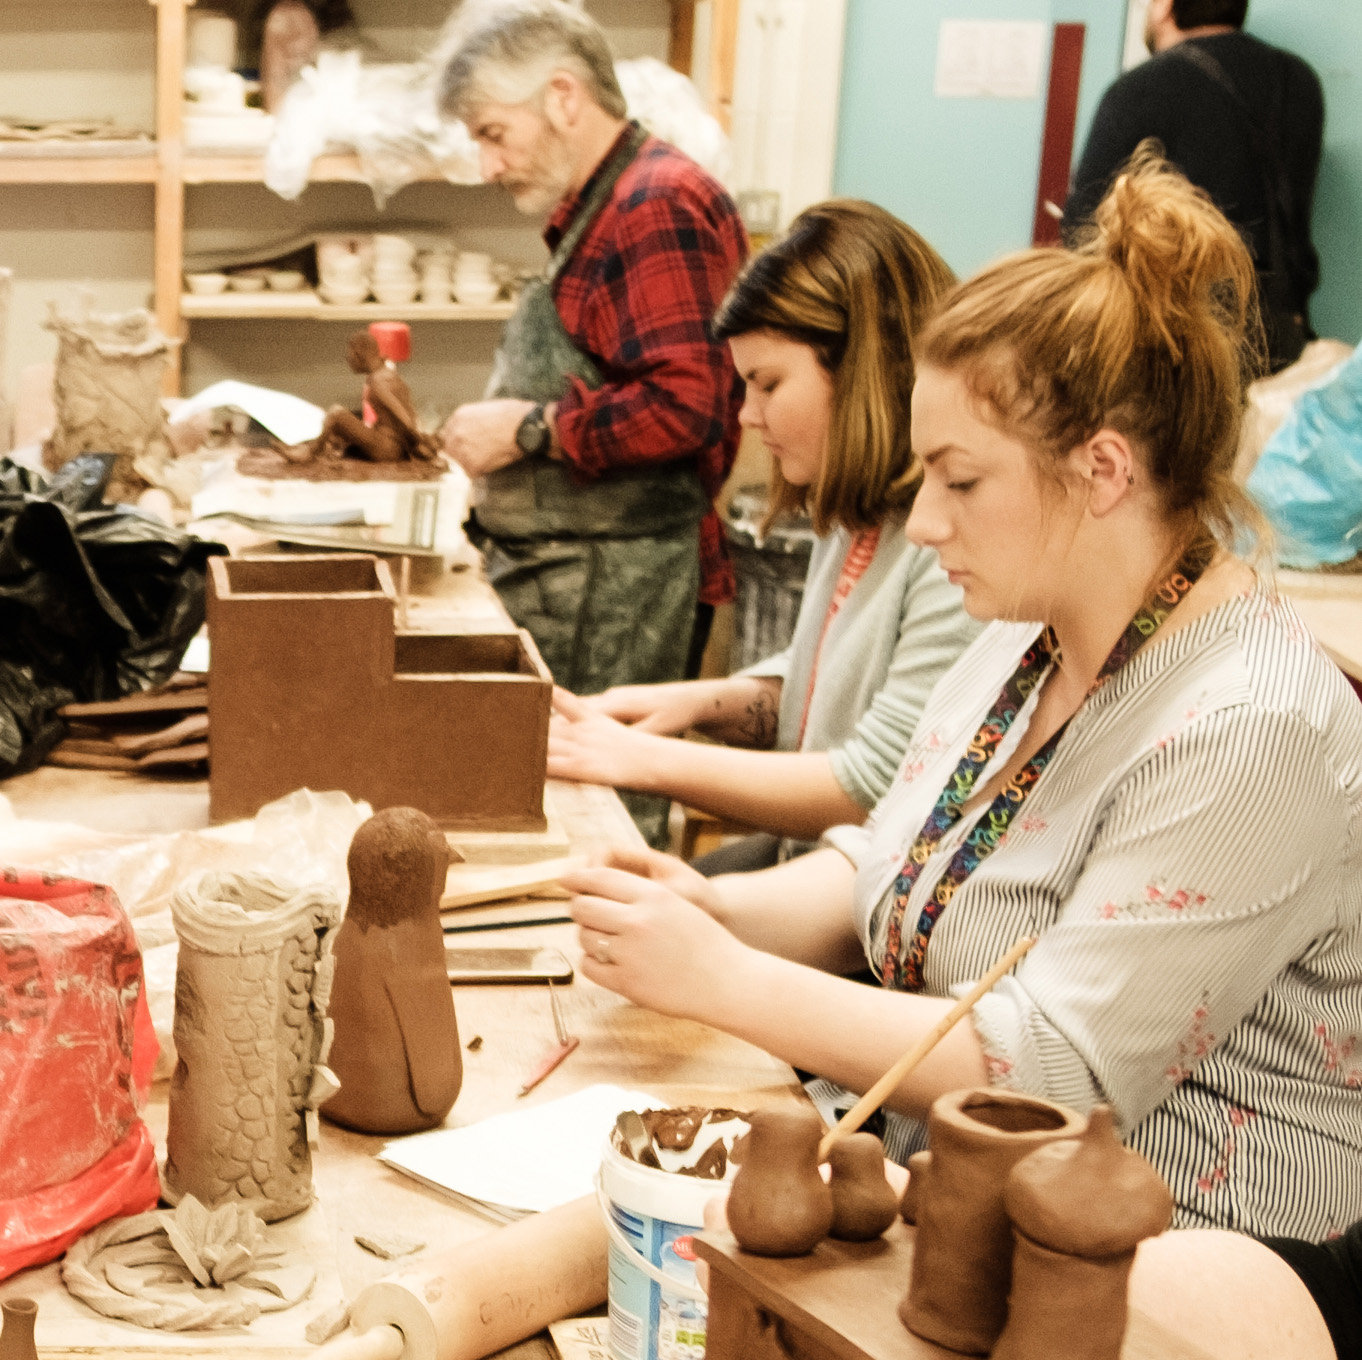 Students sitting in a workshop, hand modelling ceramics